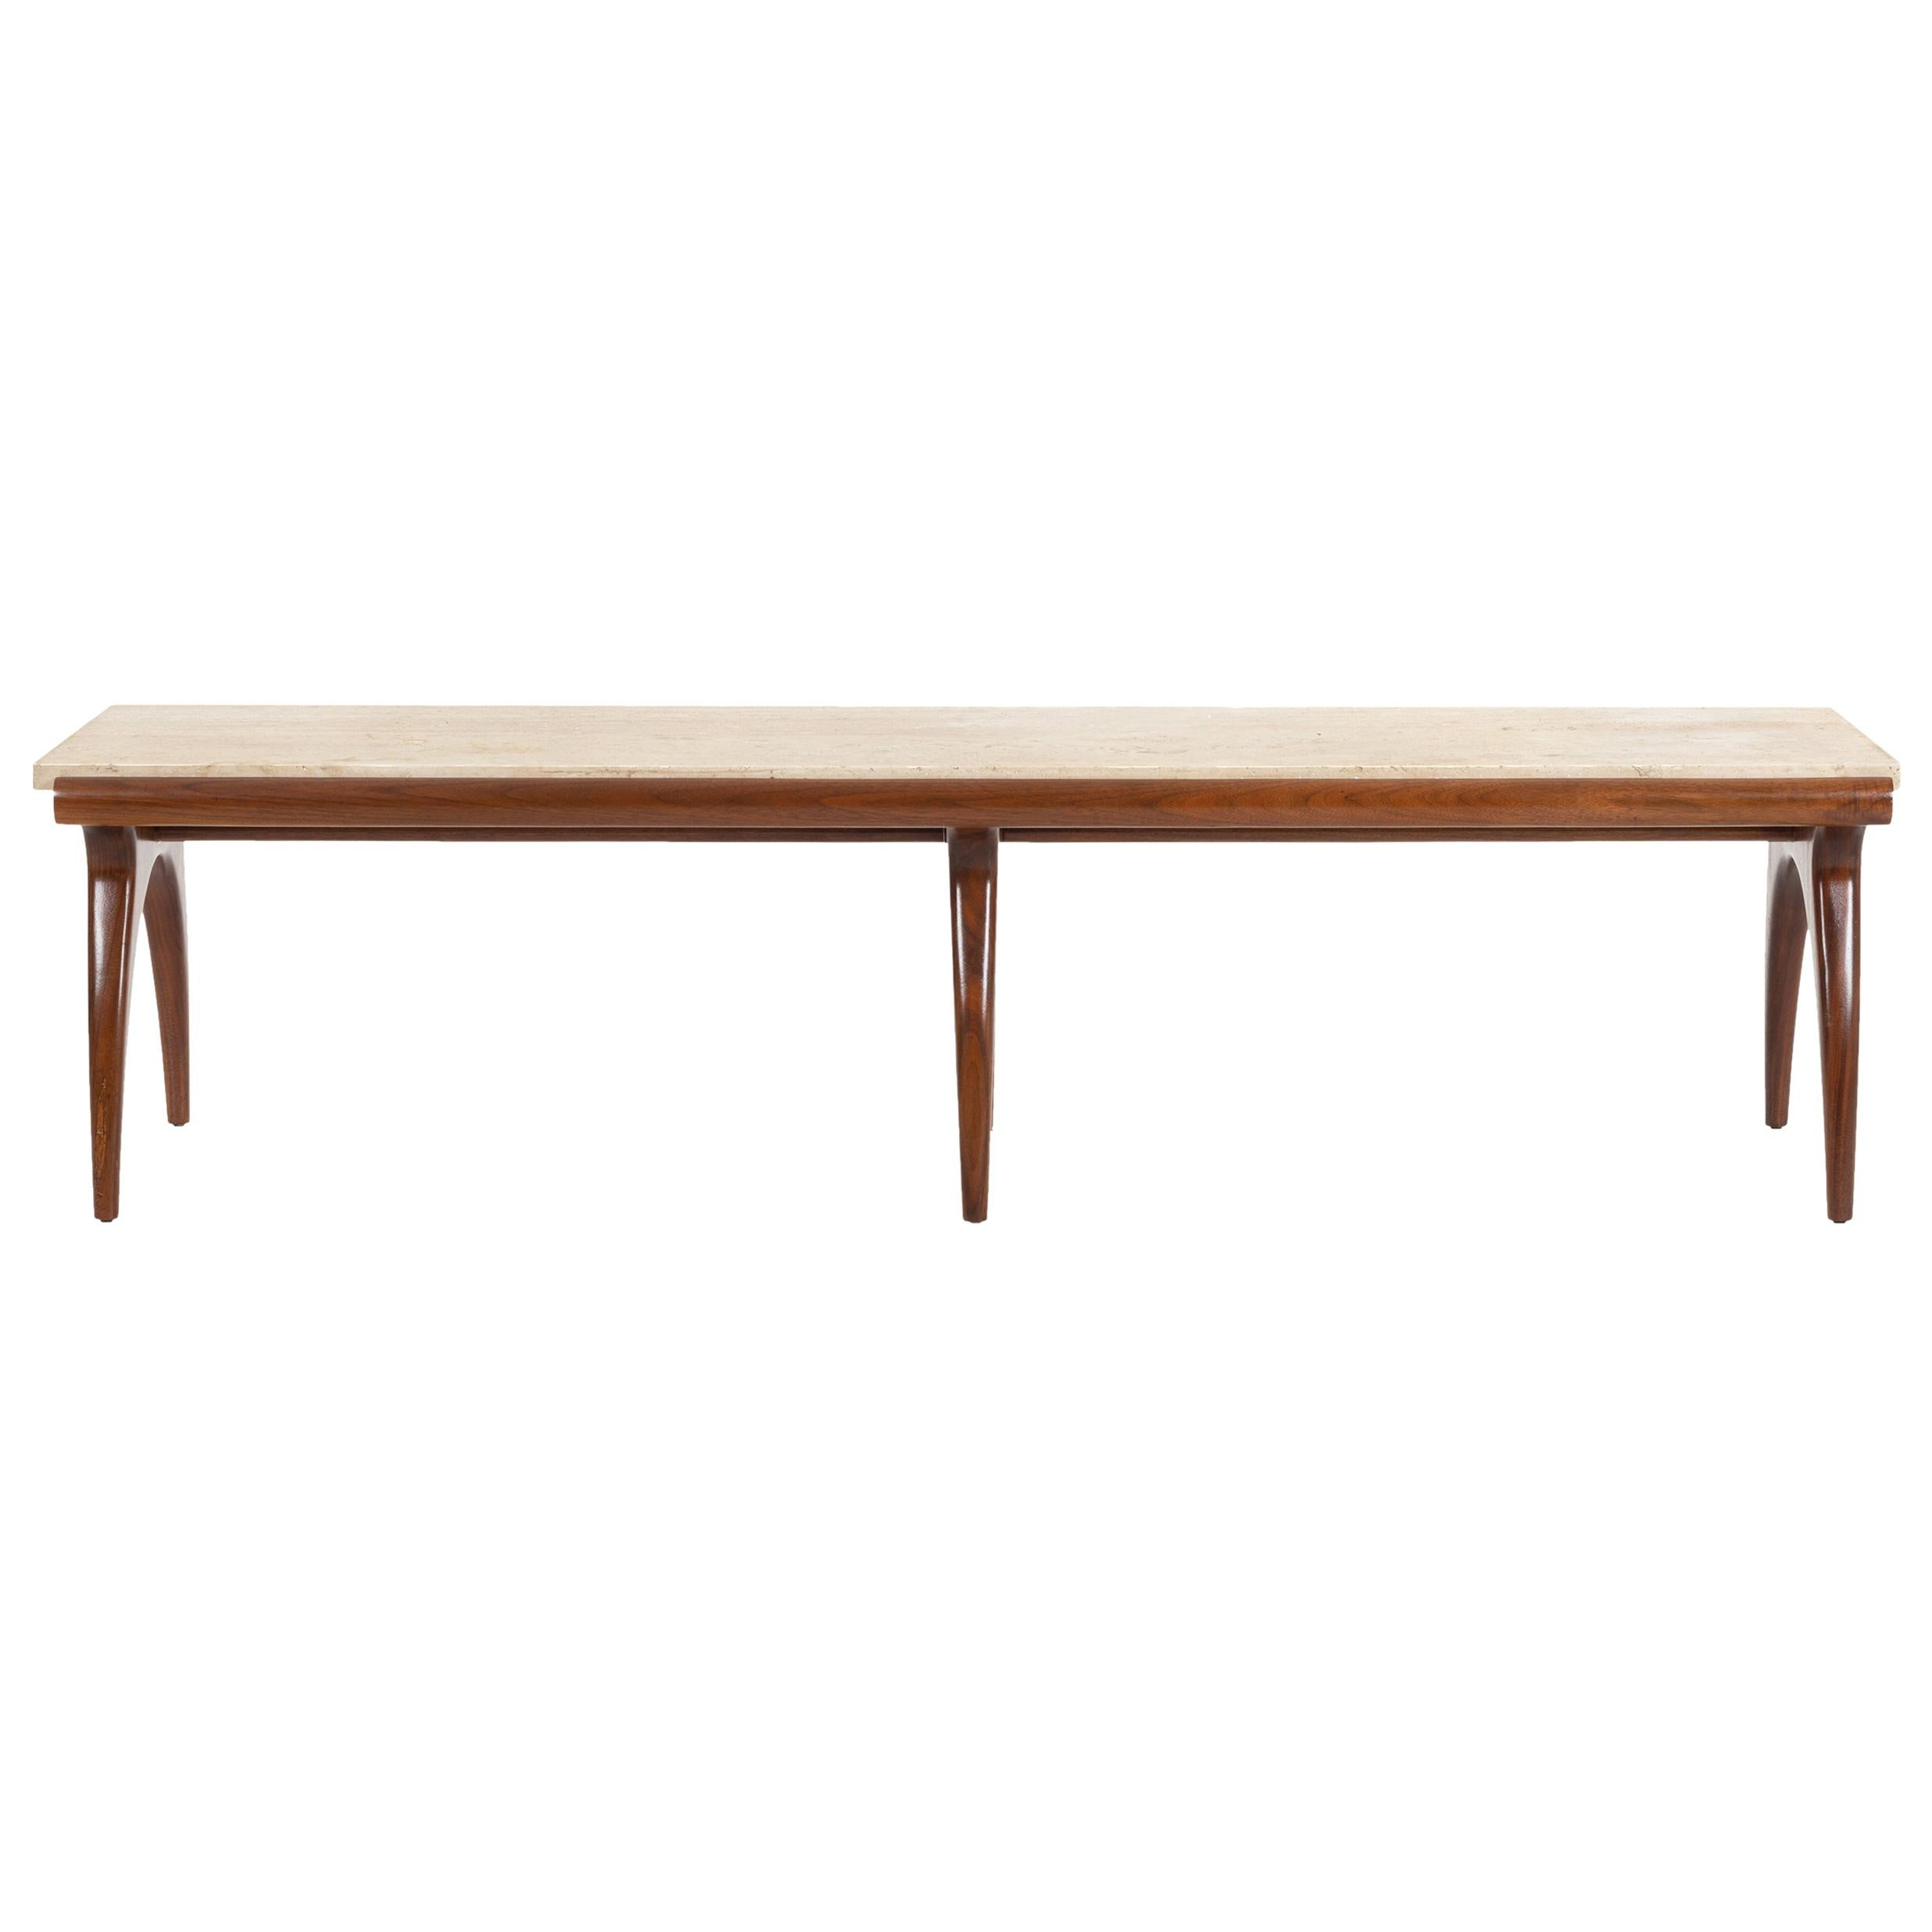 Bertha Schaefer for Singer and Sons Coffee Table